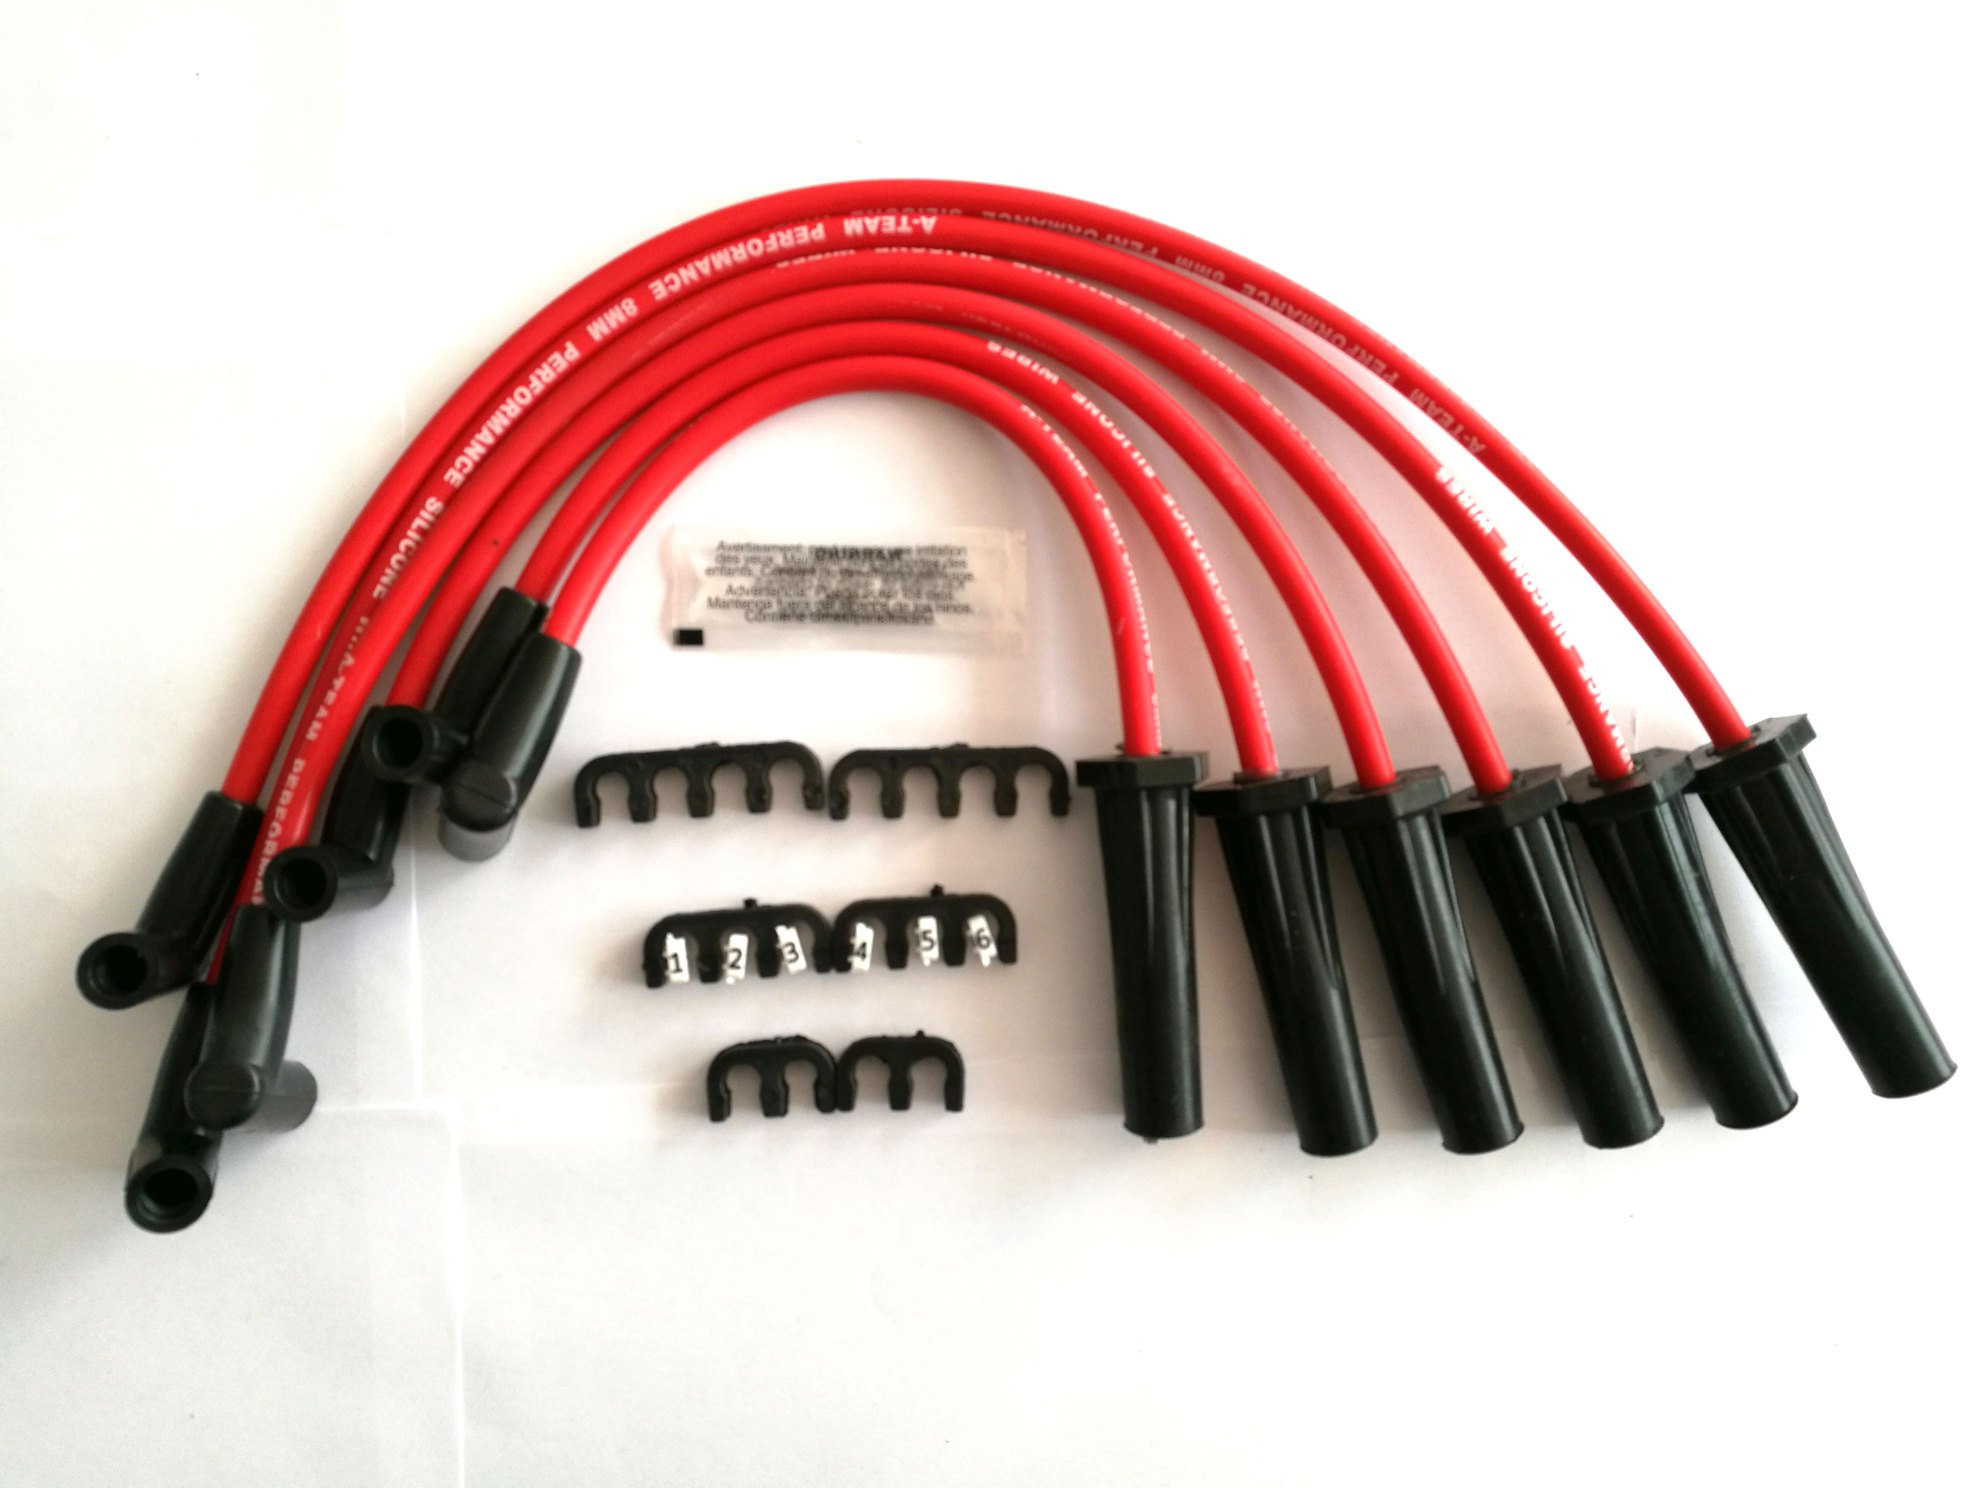 A-Team Performance 8.0mm Red Silicone Spark Plug Wires COMPATIBLE WITH Early GMC Chevy 6 Cylinder 194 216 235 Toyota Land Cruiser FJ40 FJ60 2F 3F 6 Cyl